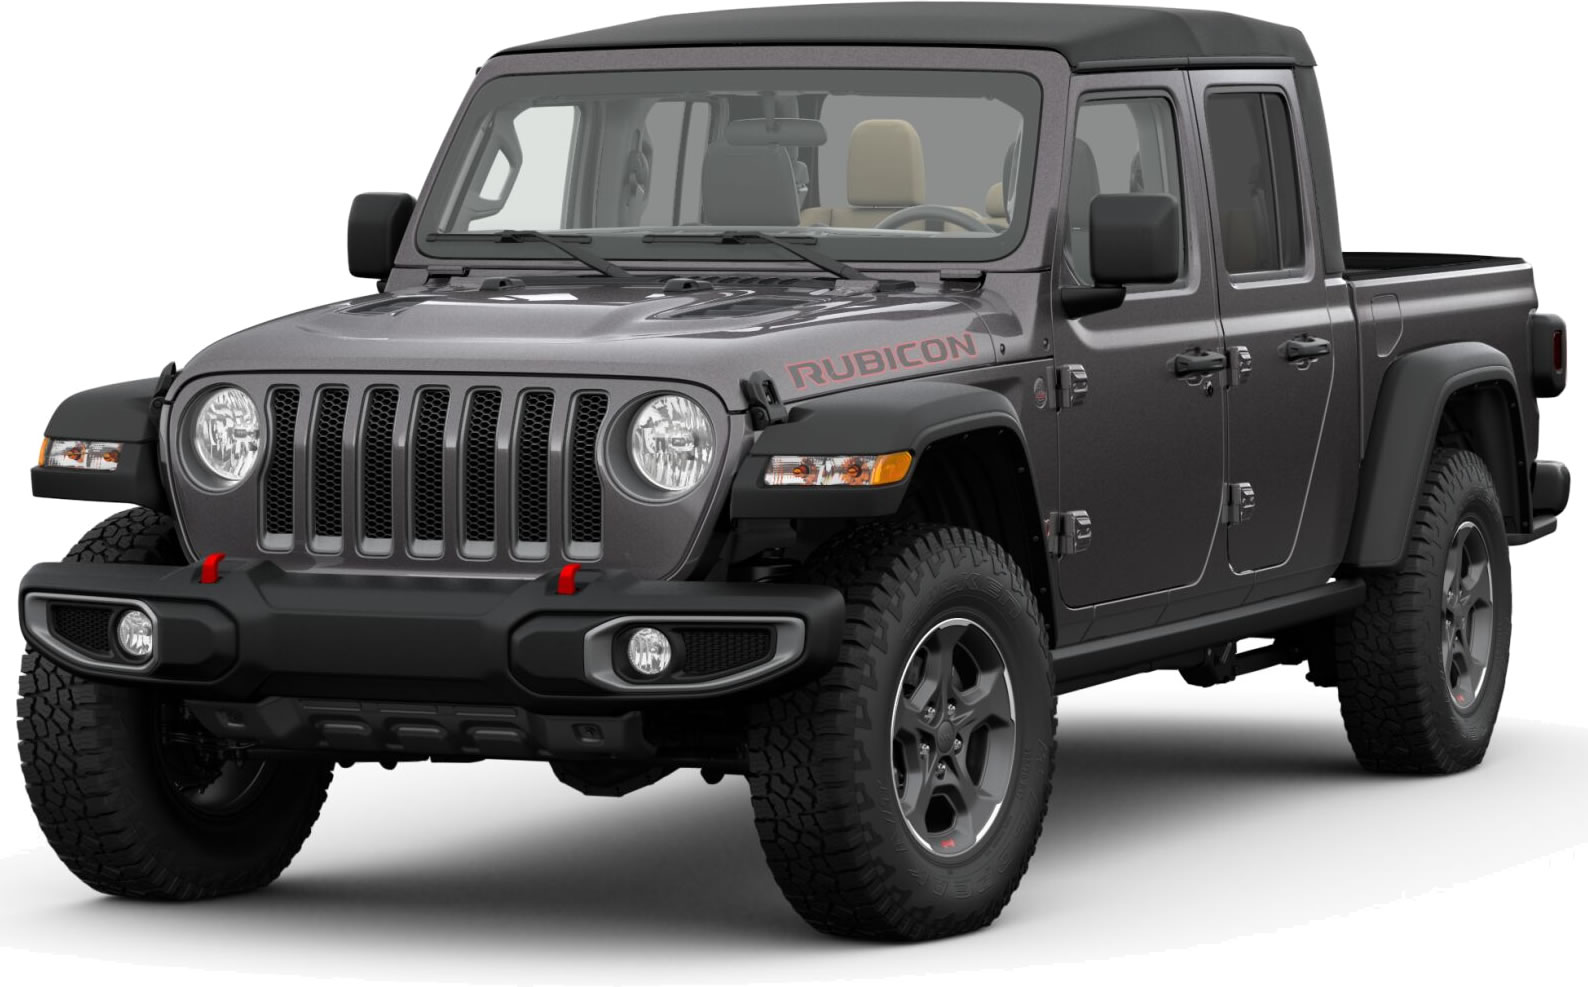 2020 Jeep Gladiator for Sale in Edmonton, AB